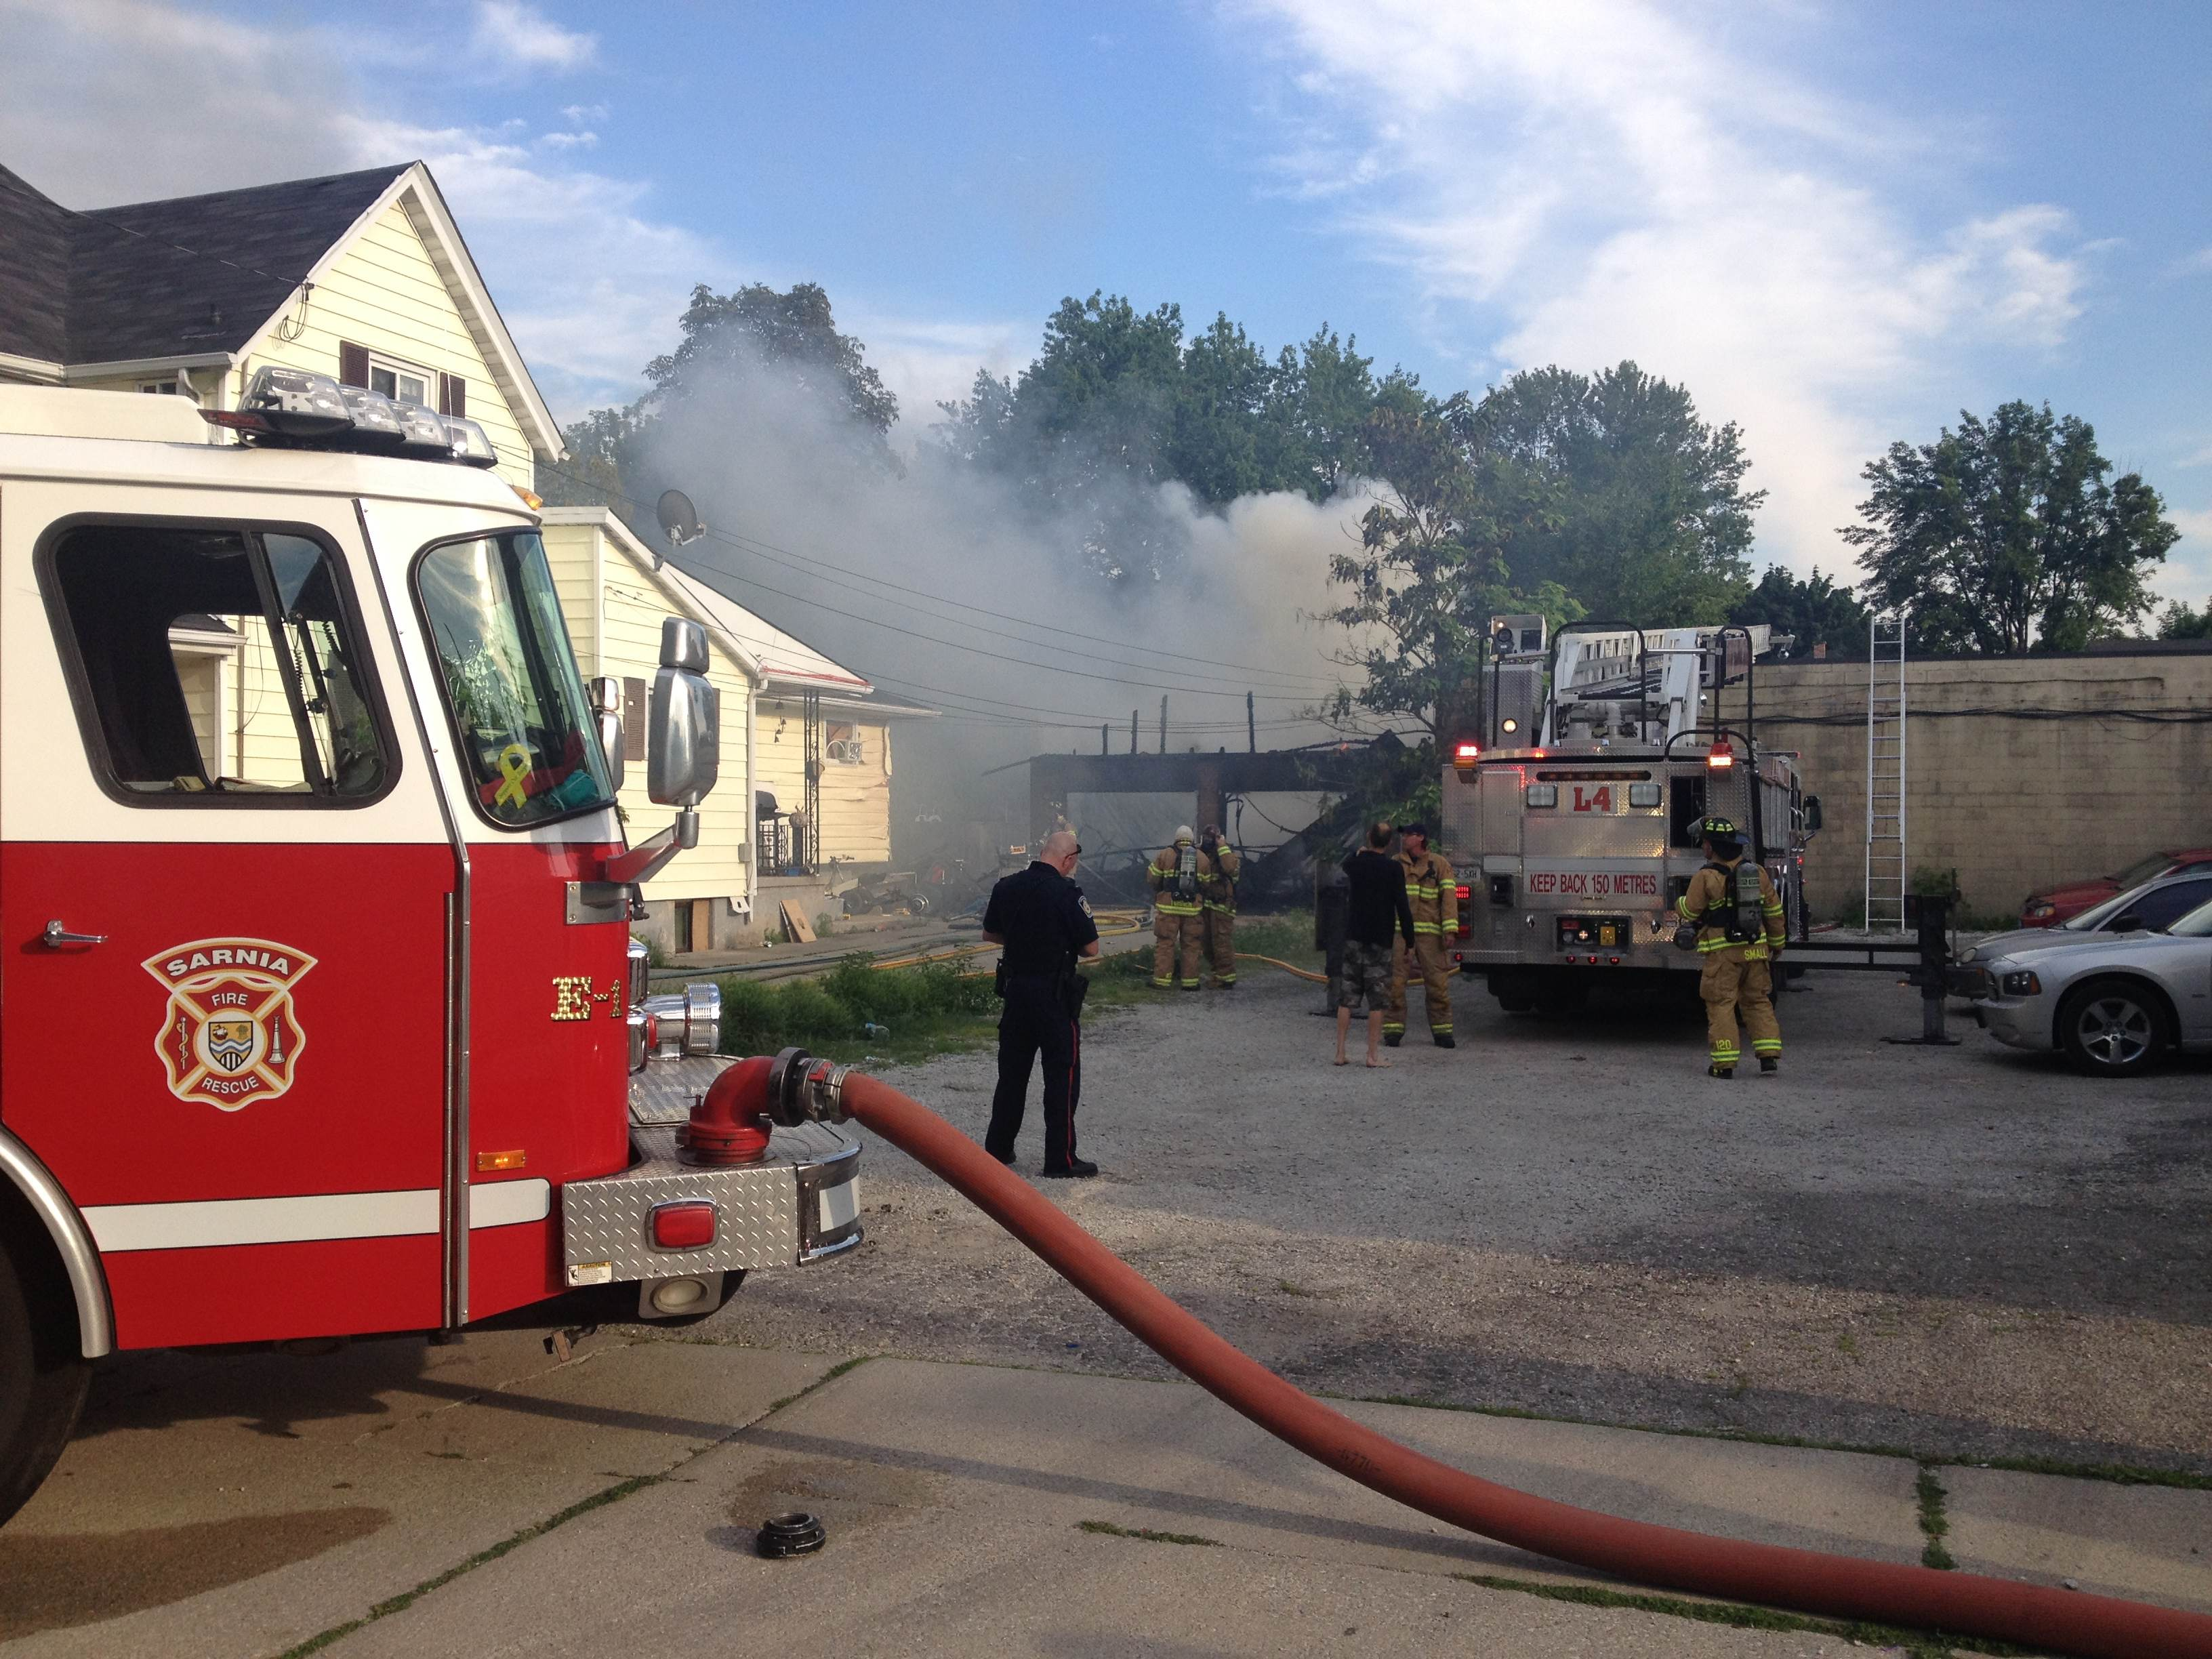 Emergency crews respond to a fire on Davis St. in Sarnia, July 11, 2014. (Photo courtesy of Jon Maillet)